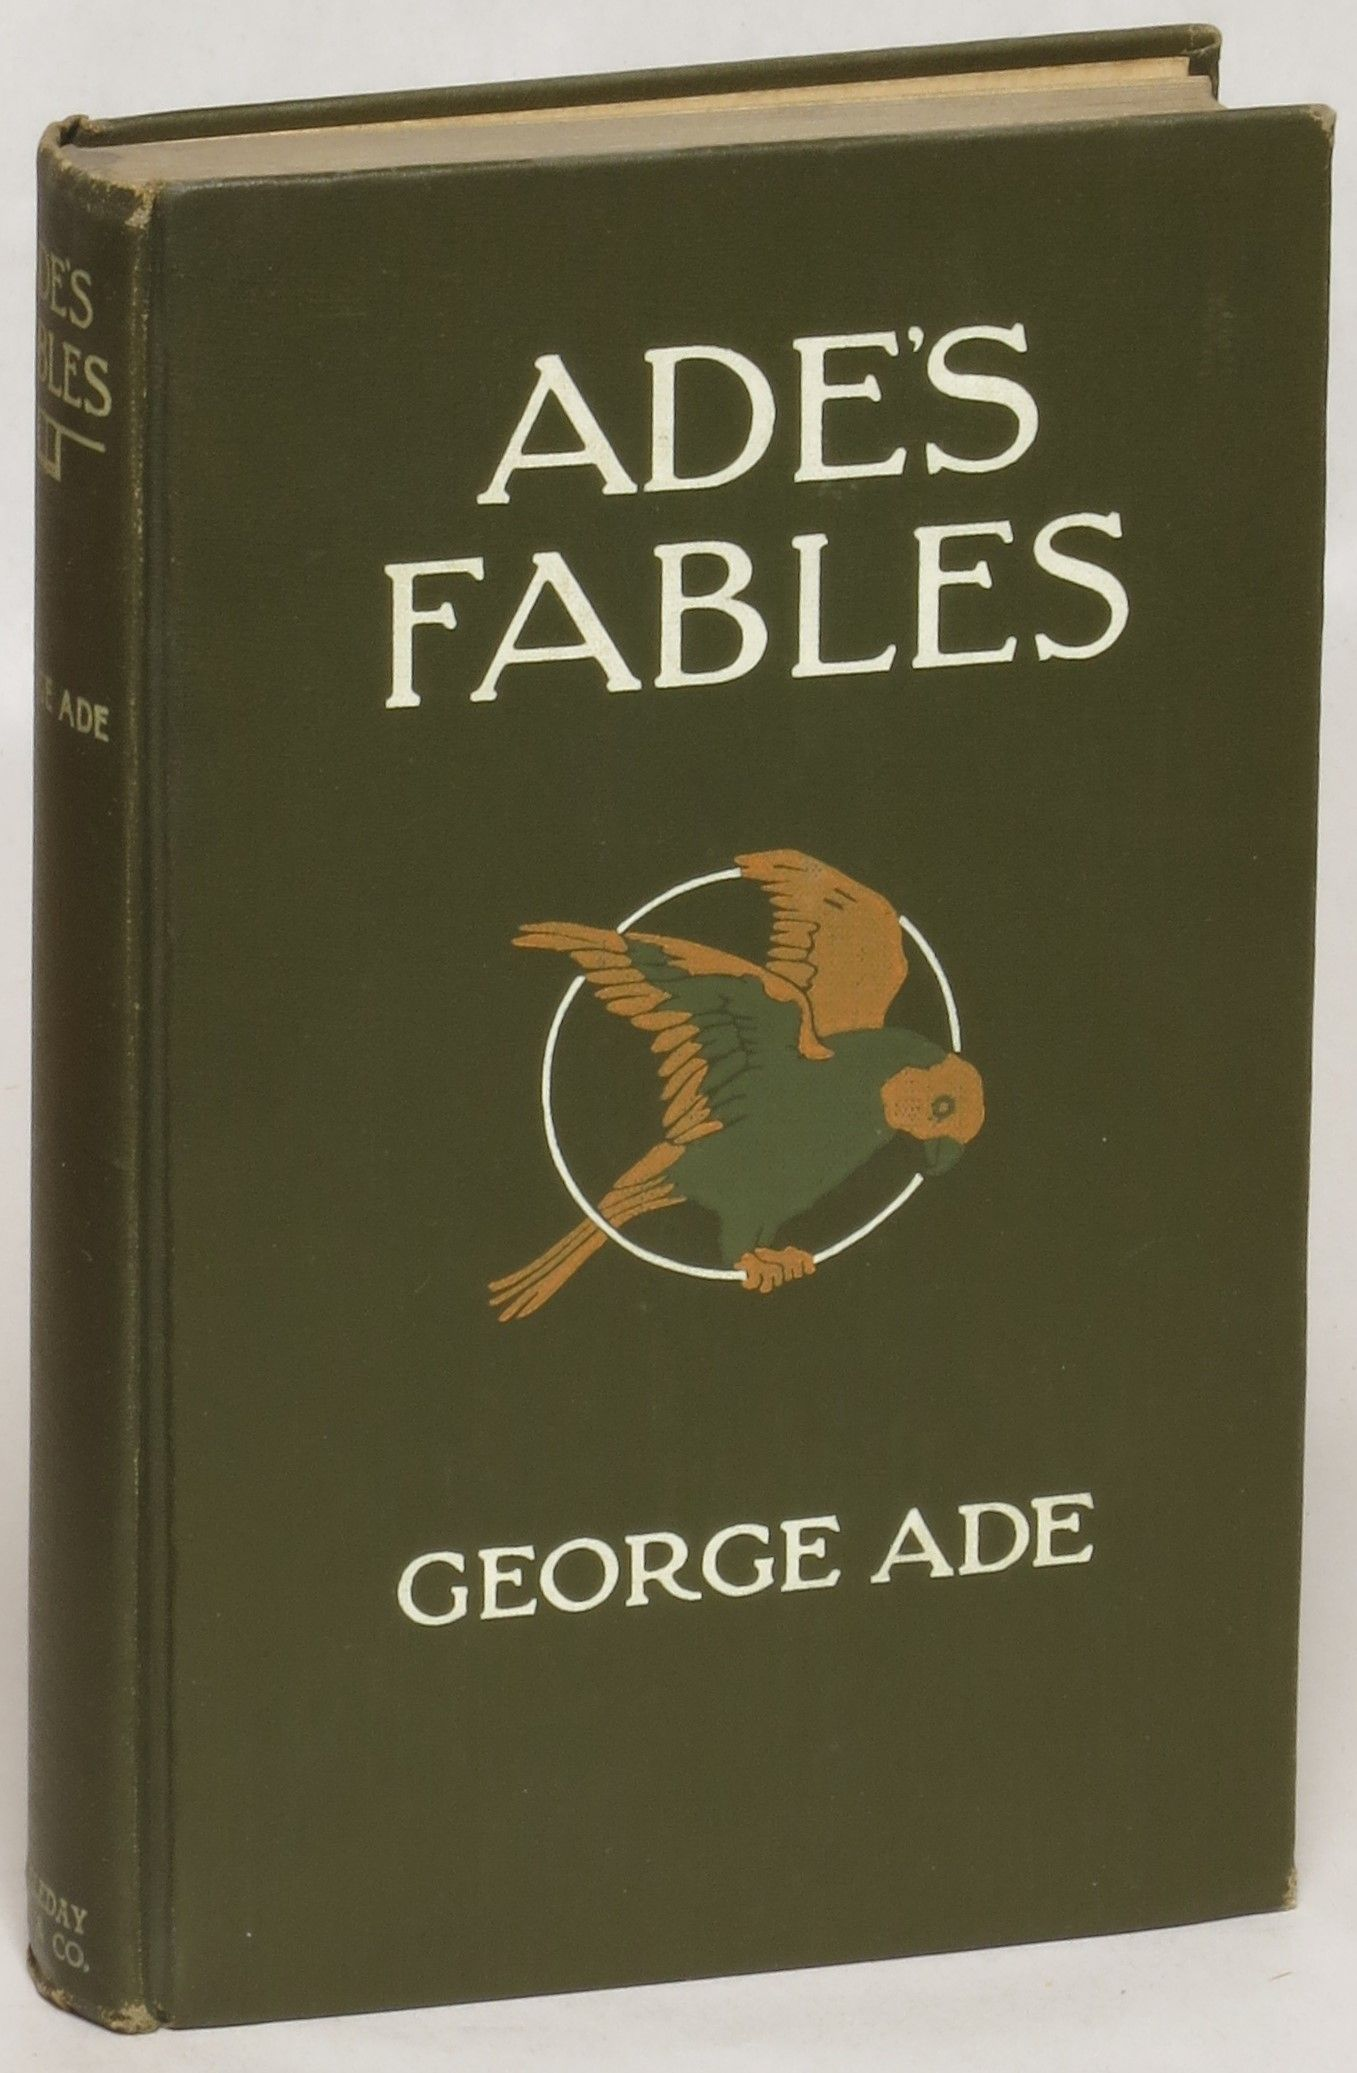 Ade's Fables by Ade, George - biblio.com